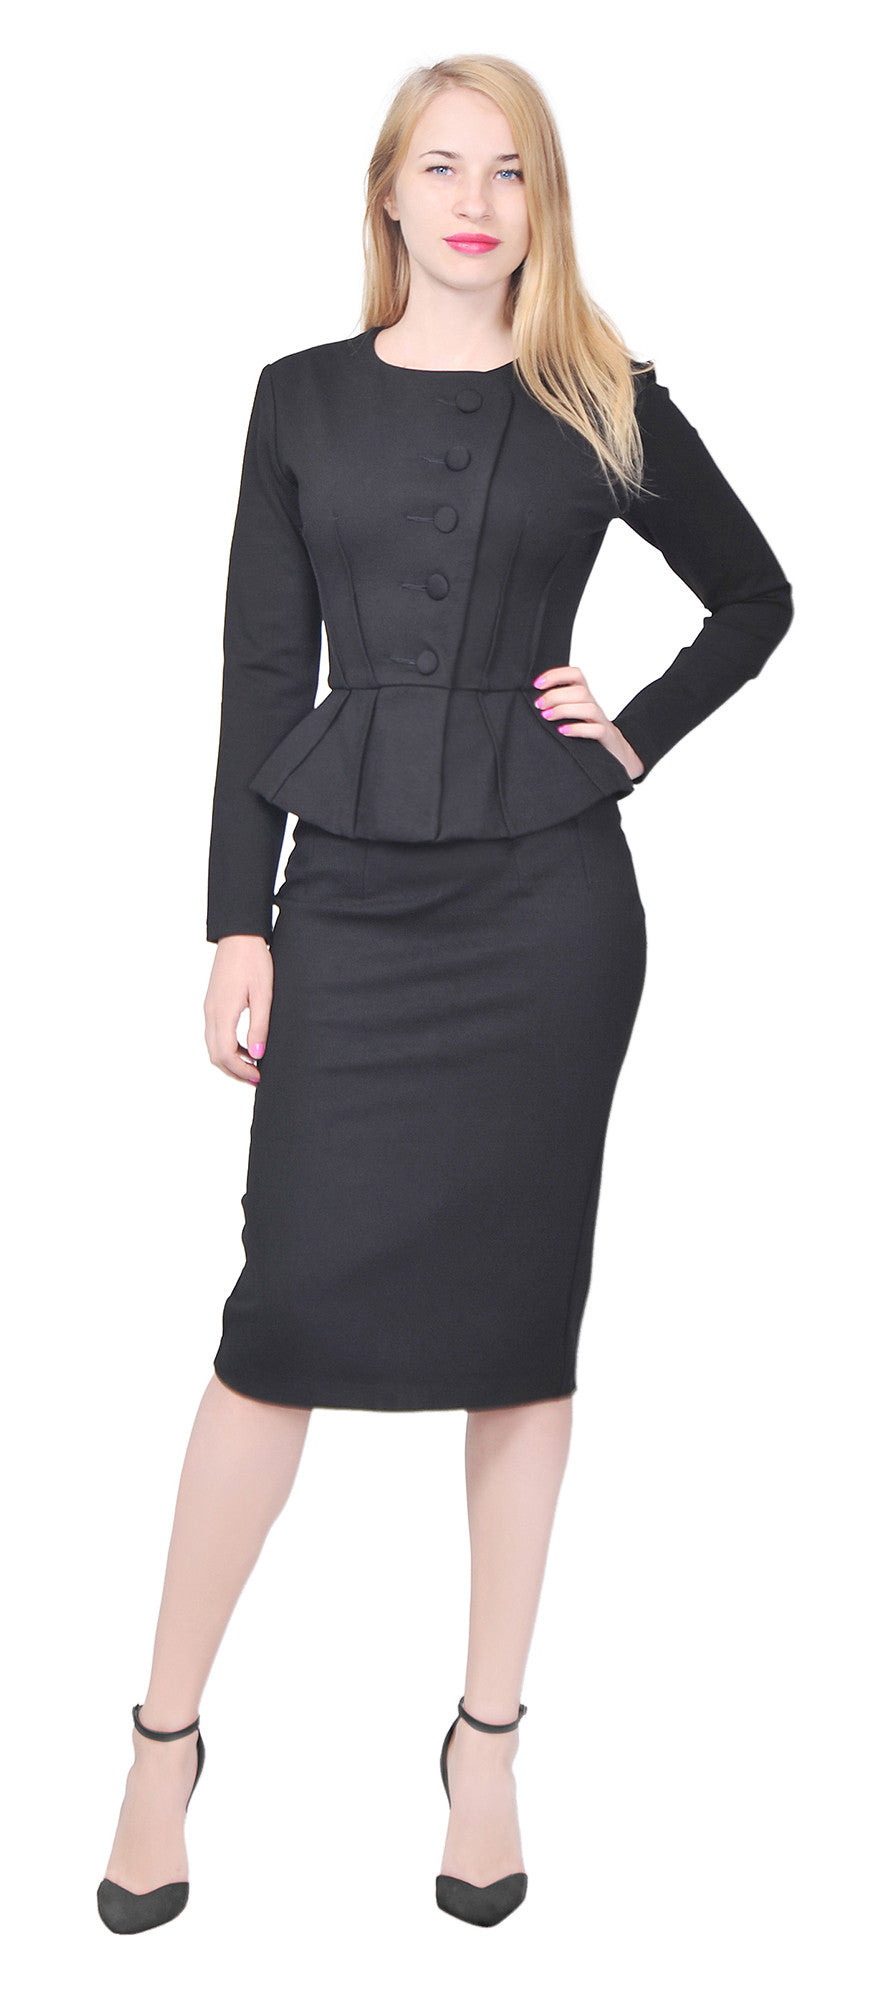 Women\'s Formal Office Business Shirt Jacket Skirt Suit Set – Marycrafts